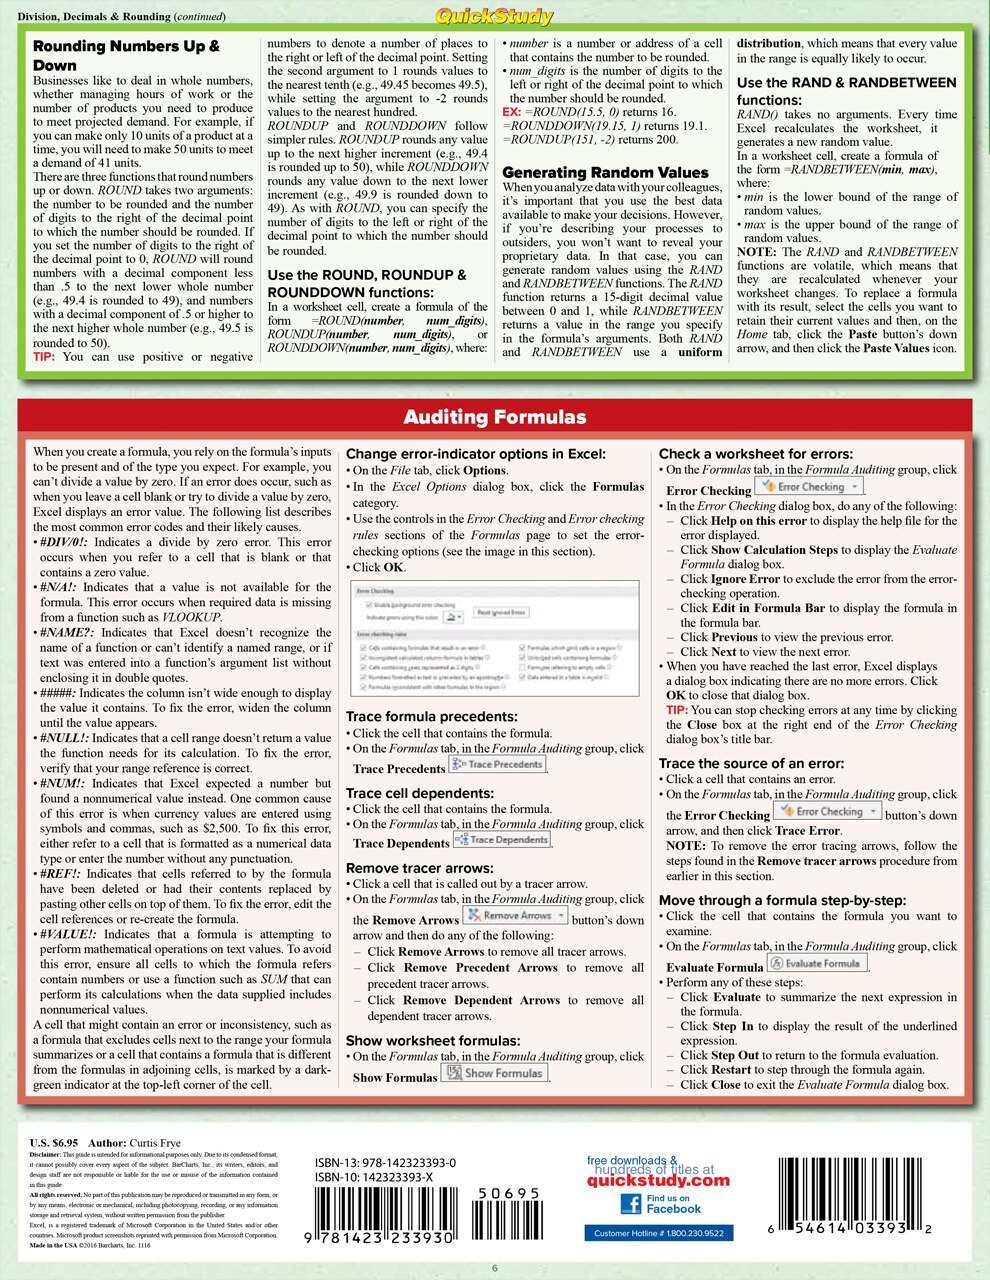 Quick Study QuickStudy Excel 2016 Formulas Laminated Reference Guide BarCharts Publishing Business Software Reference Back Image